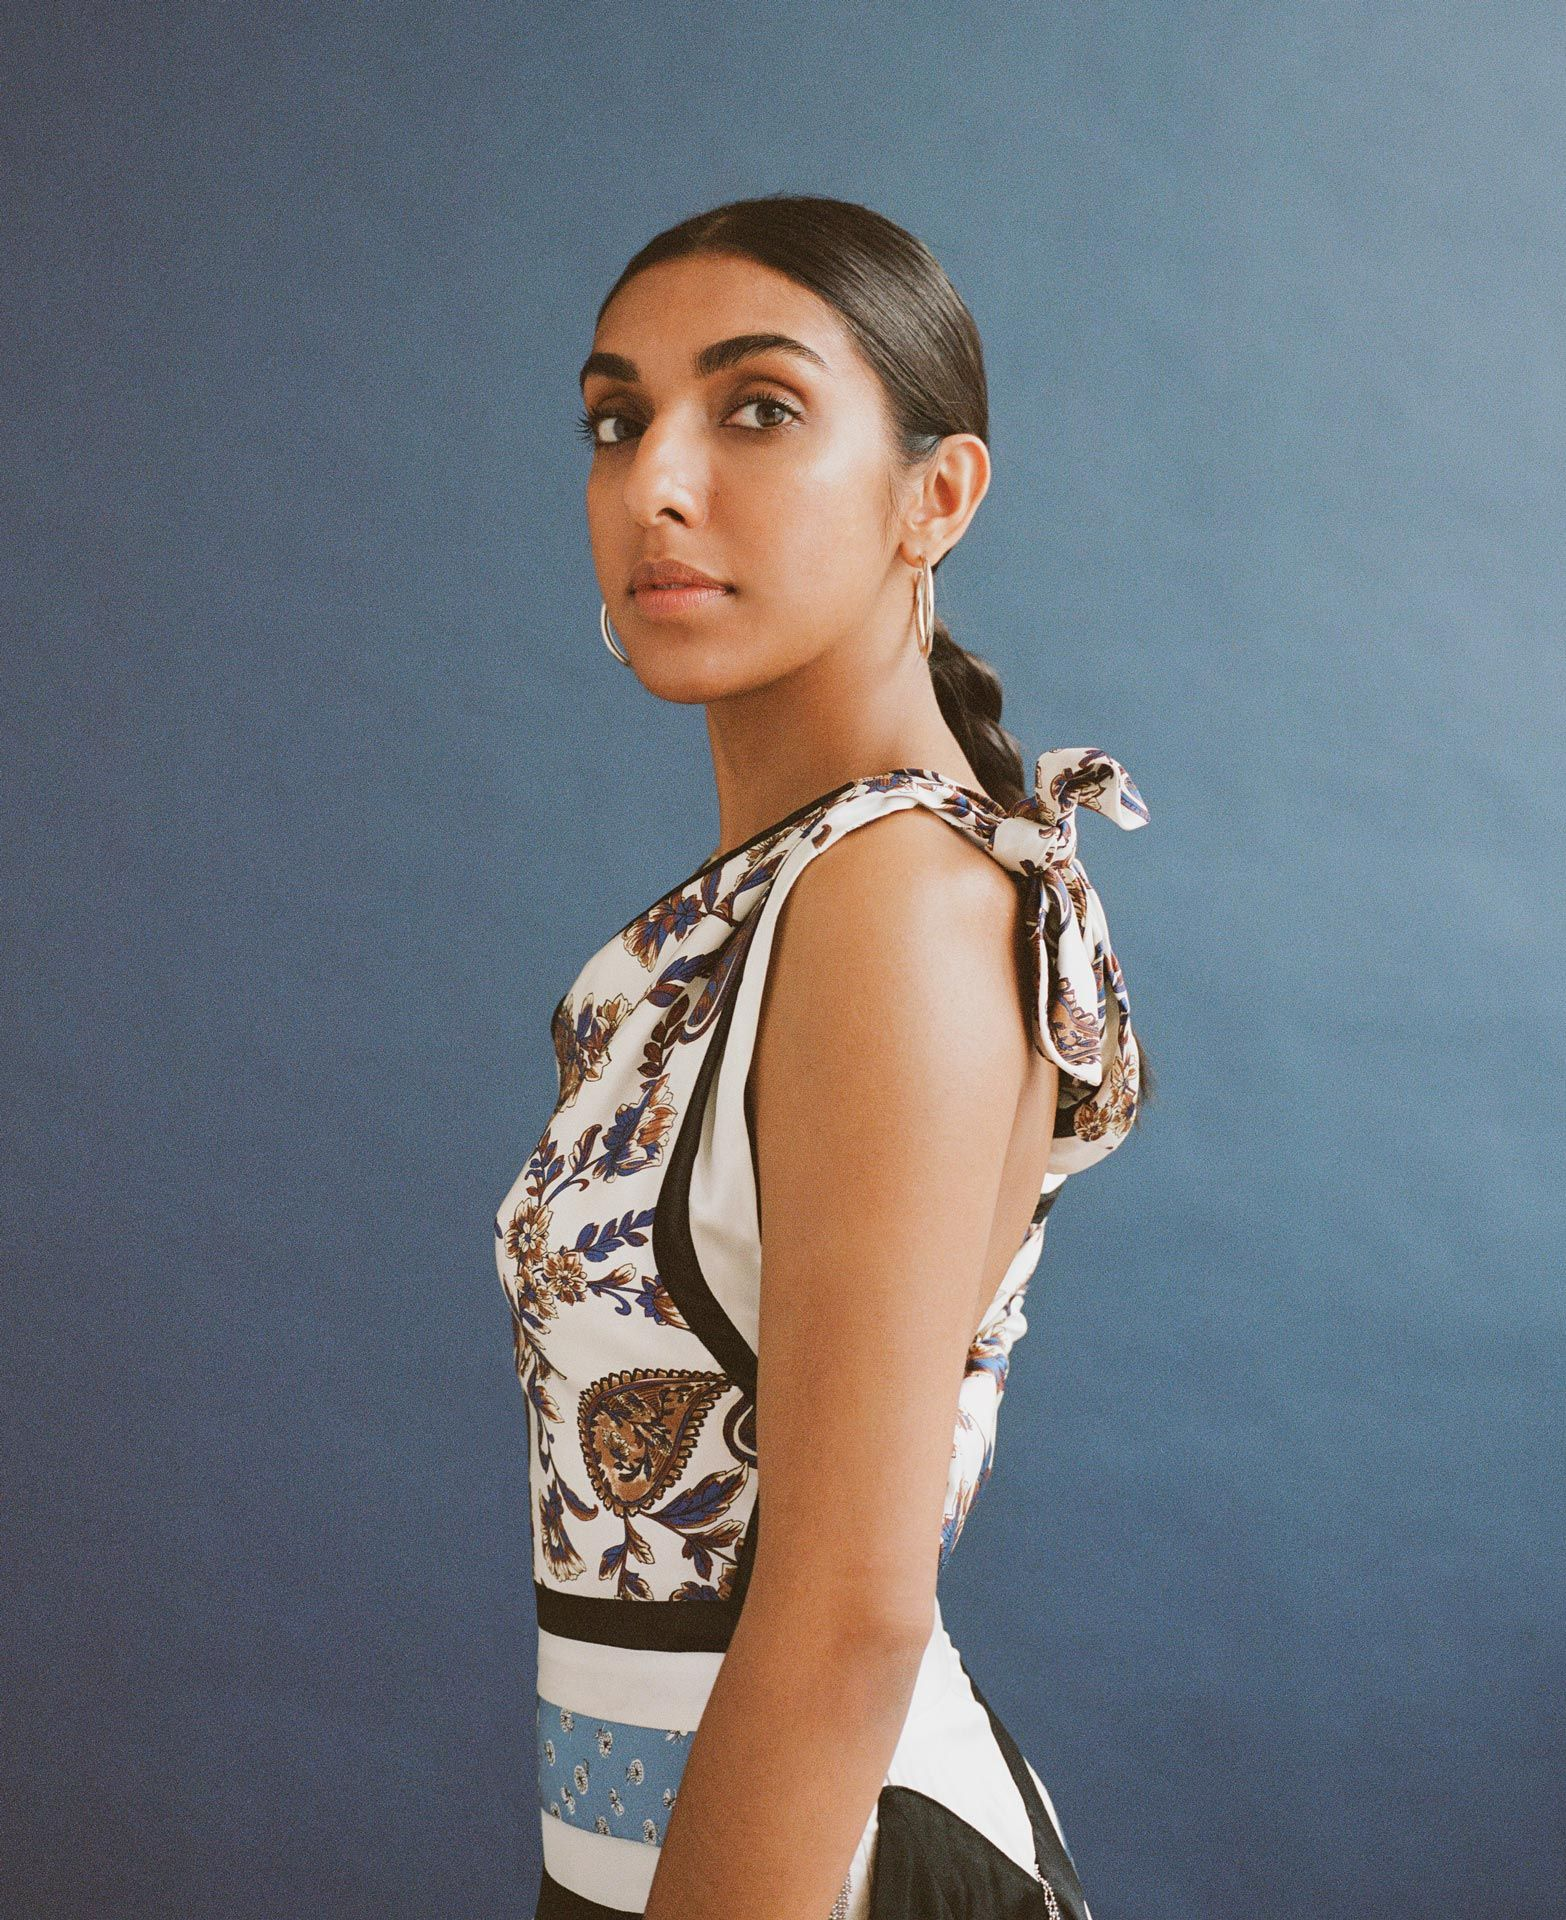 writer Rupi Kaur on blue background looking at camera by Oumayma B Tanfous for Vogue Espana